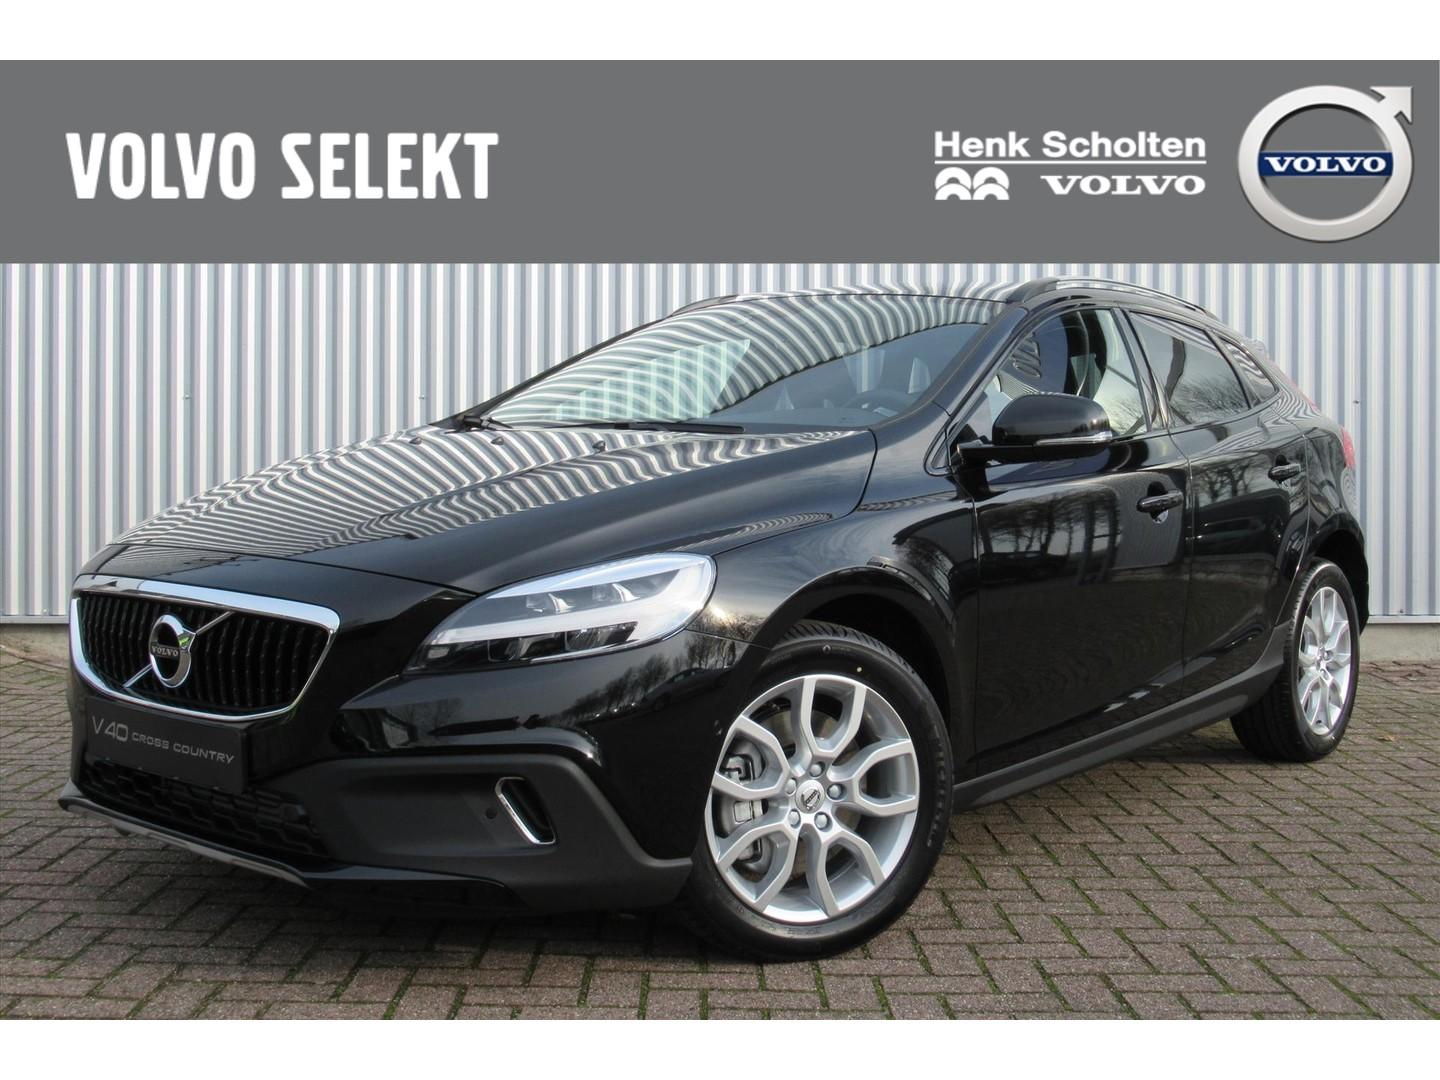 Volvo V40 cross country 1.5 t3 aut polar+ dab+ parkassist